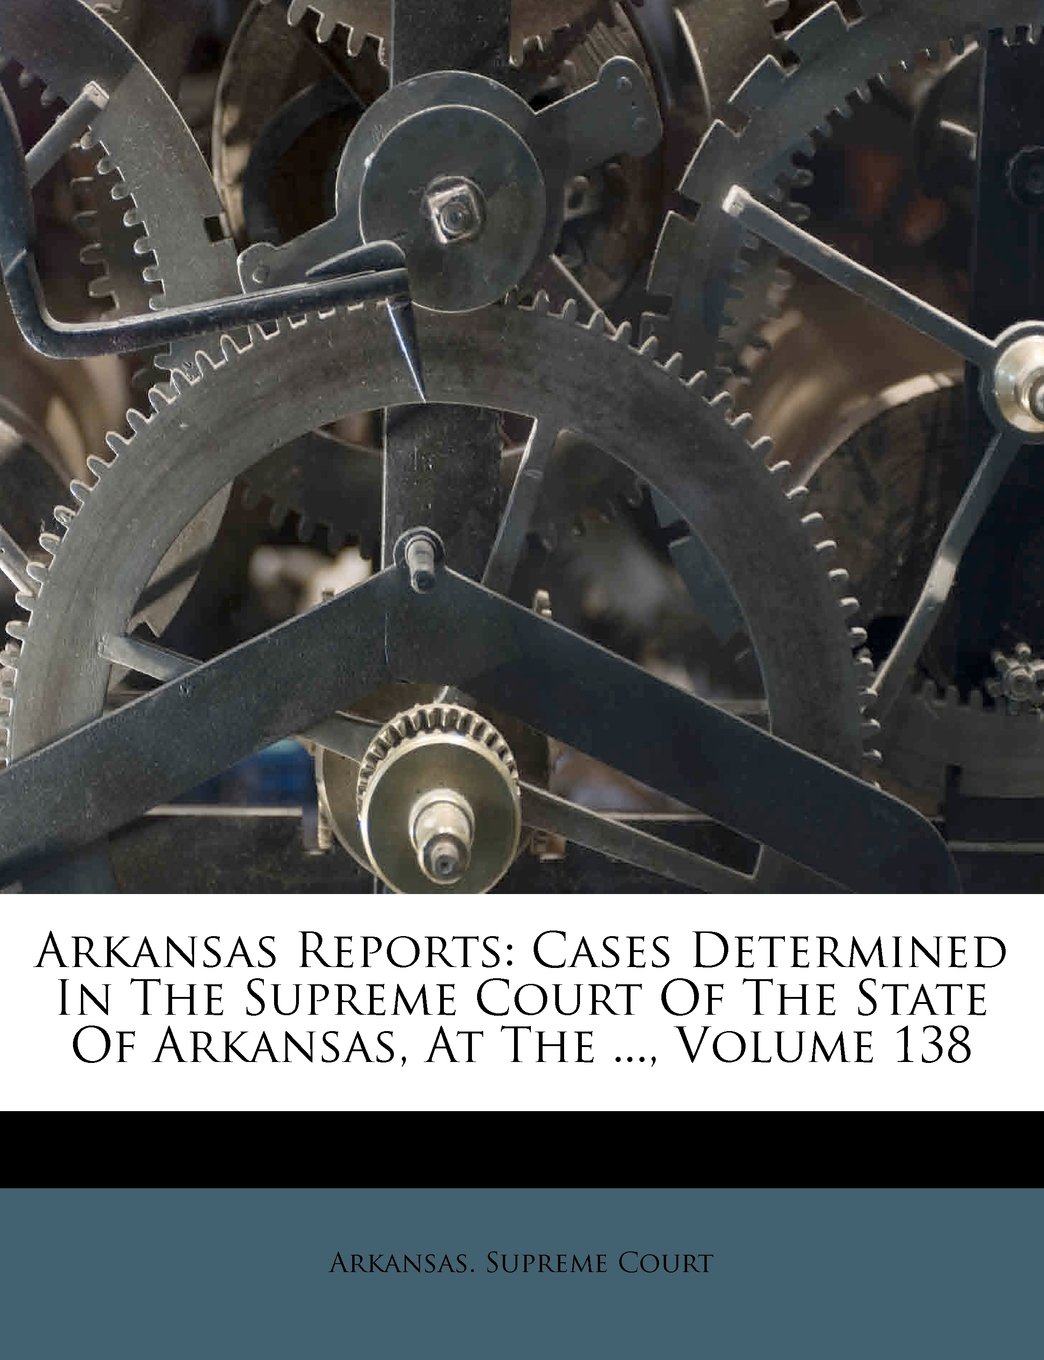 Arkansas Reports: Cases Determined In The Supreme Court Of The State Of Arkansas, At The ..., Volume 138 ebook